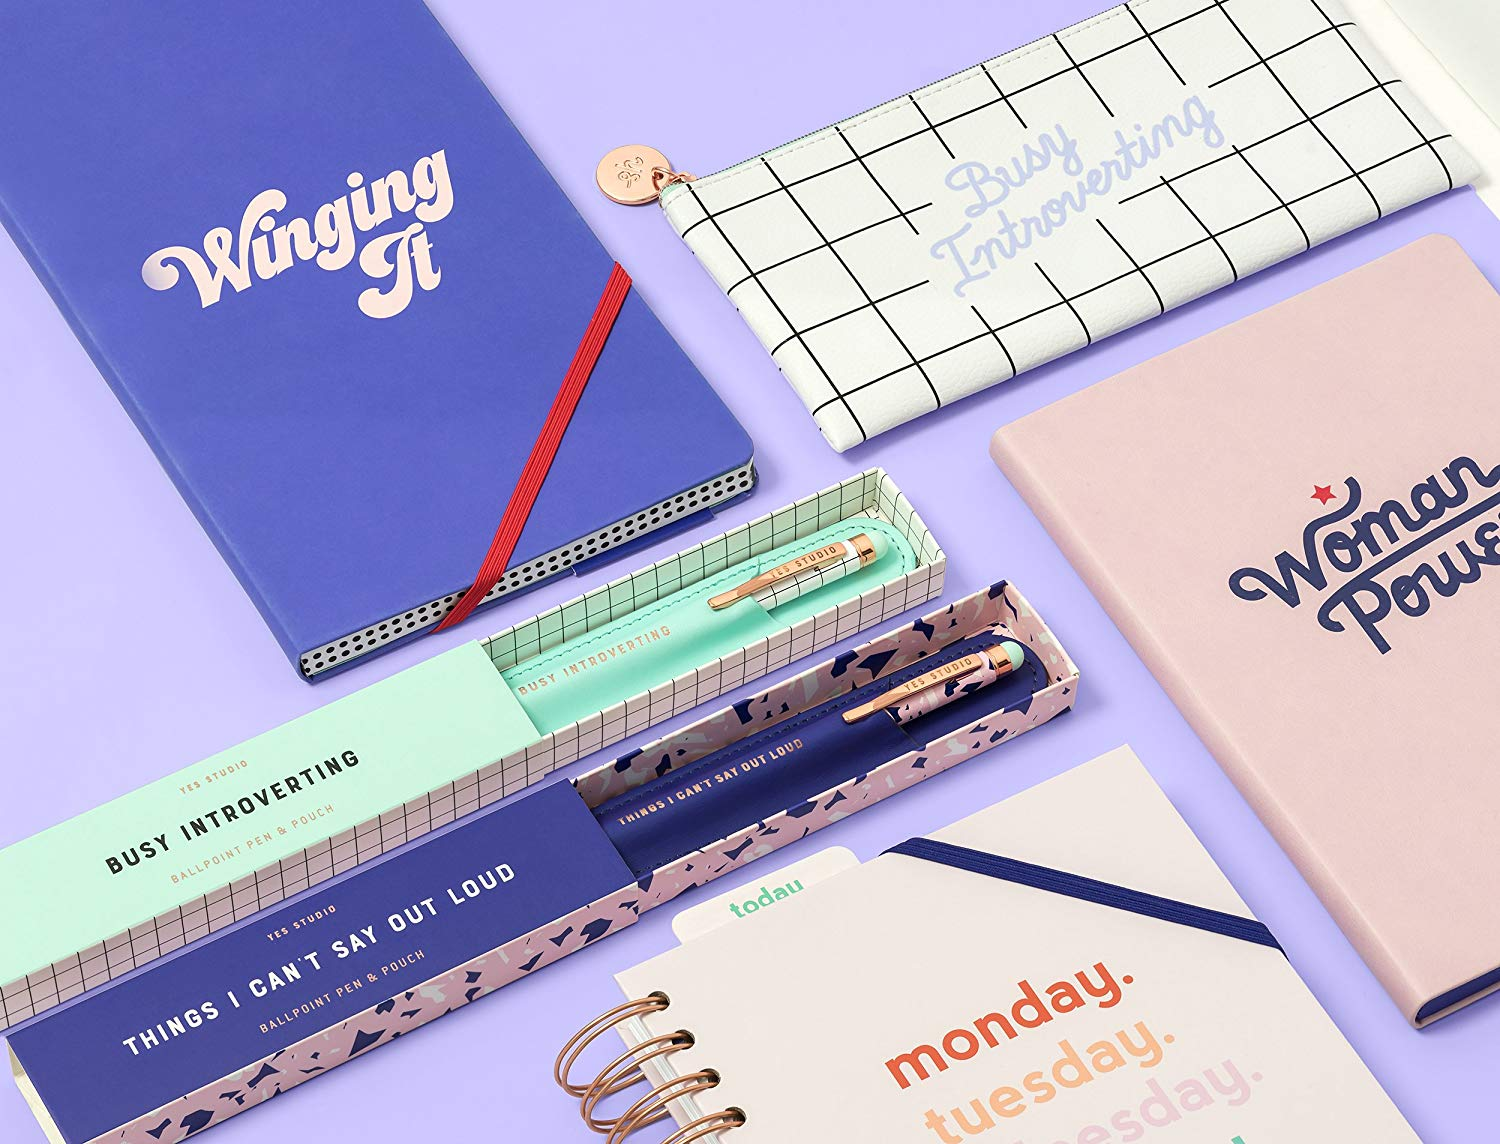 A stationery gift guide for teens